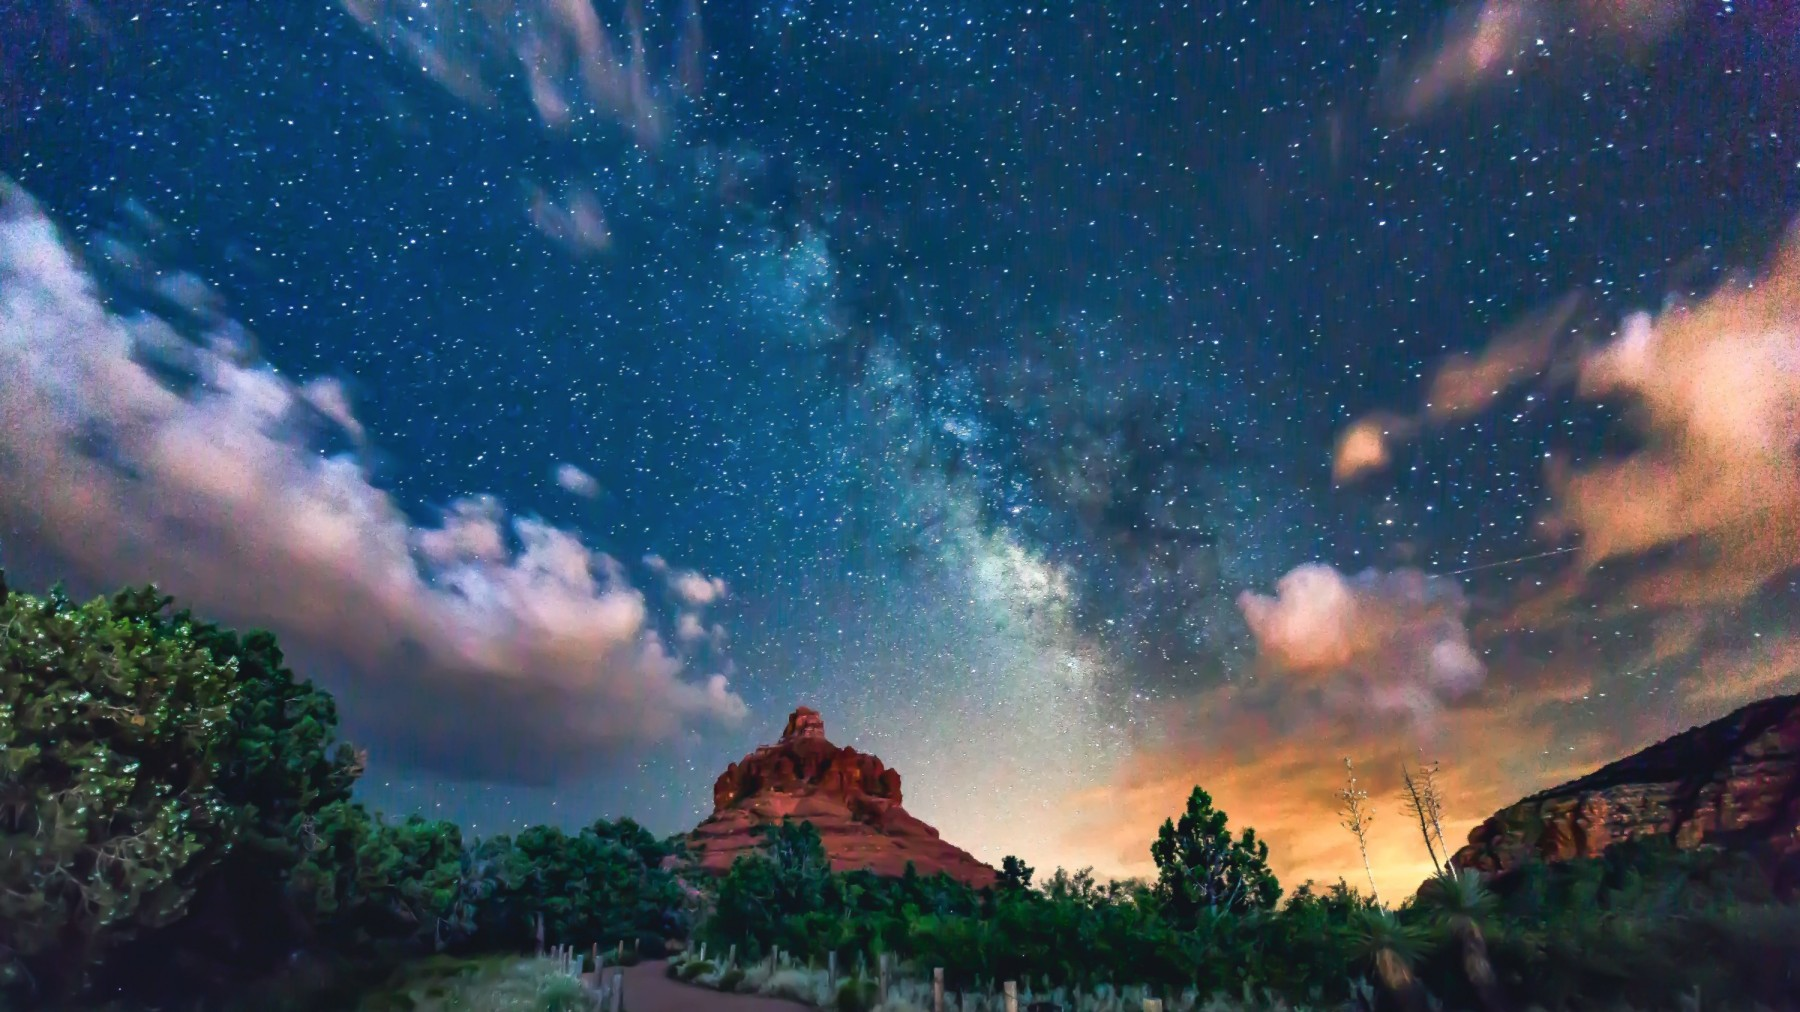 MANDATORY CREDIT: Stephen Ippolito/REX Shutterstock. Only for use in this story. Editorial Use Only. Strictly no stock, books, advertising or merchandising without photographer's permission. Mandatory Credit: Photo by Stephen Ippolito/REX/Shutterstock (5048076o) The Milky Way pictured above Bell Rock, Sedona, Arizona. During the 30-second exposure used to capture this photo several bolts of lightening lit up the sky Seal photobombs milky way, America - 14 Aug 2015 FULL COPY: http://www.rexfeatures.com/nanolink/qypq  A photographer captured the incredible moment a seal photo-bombed a shot of the Milky Way.  Photographer Stephen Ippolito, 45, regularly takes photos of the Milky Way, and was pleasantly surprised to see a seal photo-bombing his perfect shot.  Stephen was setting up his camera, whilst waiting for friends to arrive, when he saw something moving on the sand.  To his surprise it was a seal, basking on the sand. The seal began to waddle closer to Stephen and he decide to capture the perfect moment.